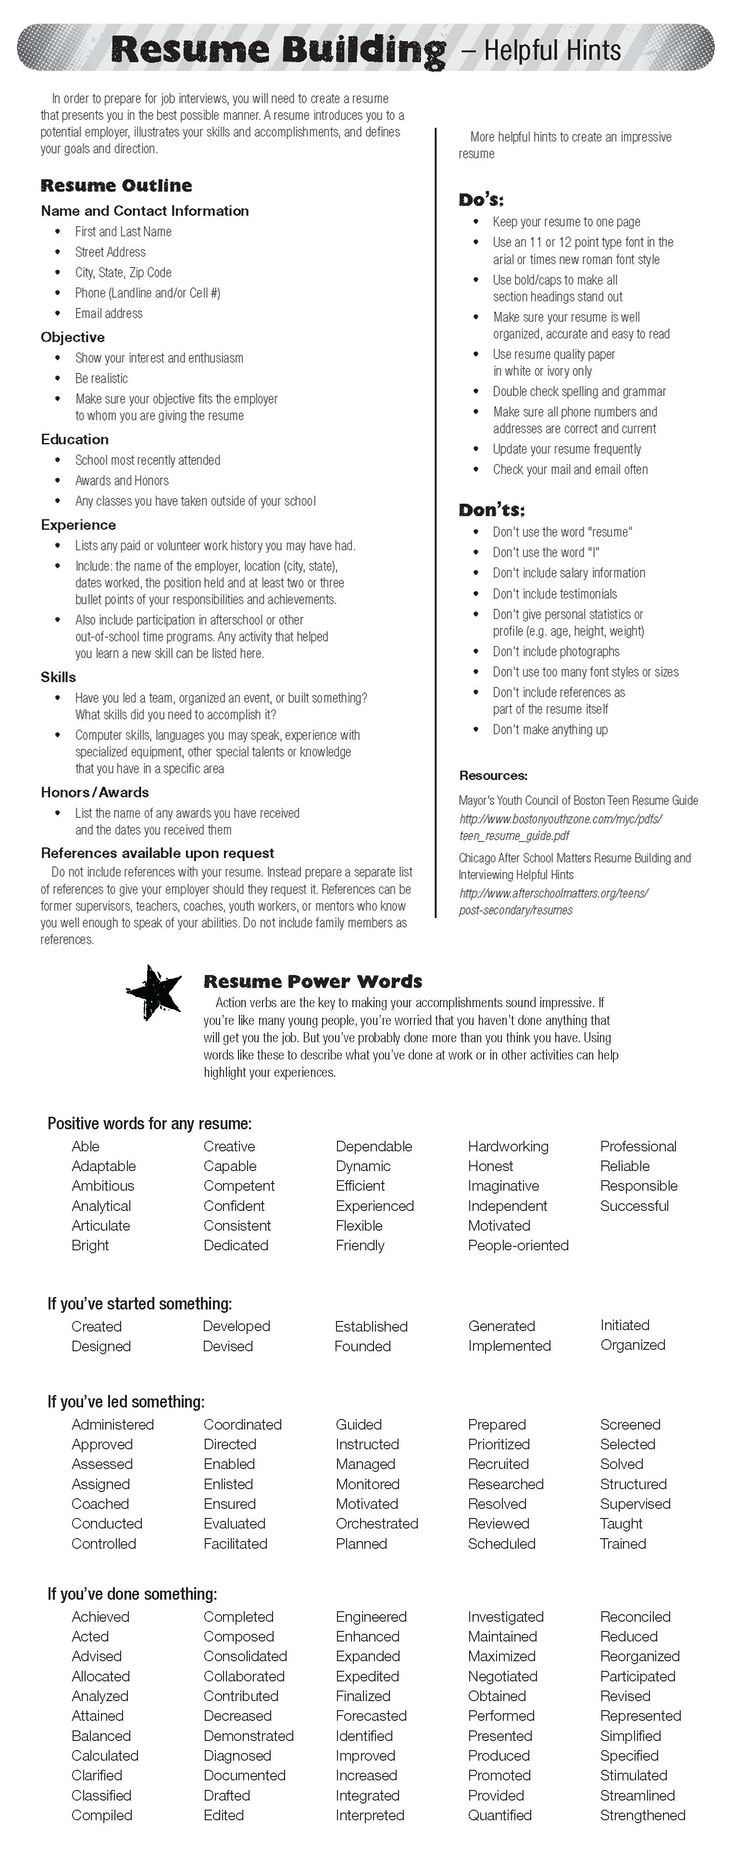 Opposenewapstandardsus  Marvellous  Ideas About Resume On Pinterest  Cv Format Resume Cv And  With Fair  Ideas About Resume On Pinterest  Cv Format Resume Cv And Resume Templates With Beautiful Keywords On Resume Also Creative Resume Samples In Addition Free Easy Resume Templates And Resume Examples For Jobs With No Experience As Well As Cv Resume Format Additionally Resume For Internships From Pinterestcom With Opposenewapstandardsus  Fair  Ideas About Resume On Pinterest  Cv Format Resume Cv And  With Beautiful  Ideas About Resume On Pinterest  Cv Format Resume Cv And Resume Templates And Marvellous Keywords On Resume Also Creative Resume Samples In Addition Free Easy Resume Templates From Pinterestcom